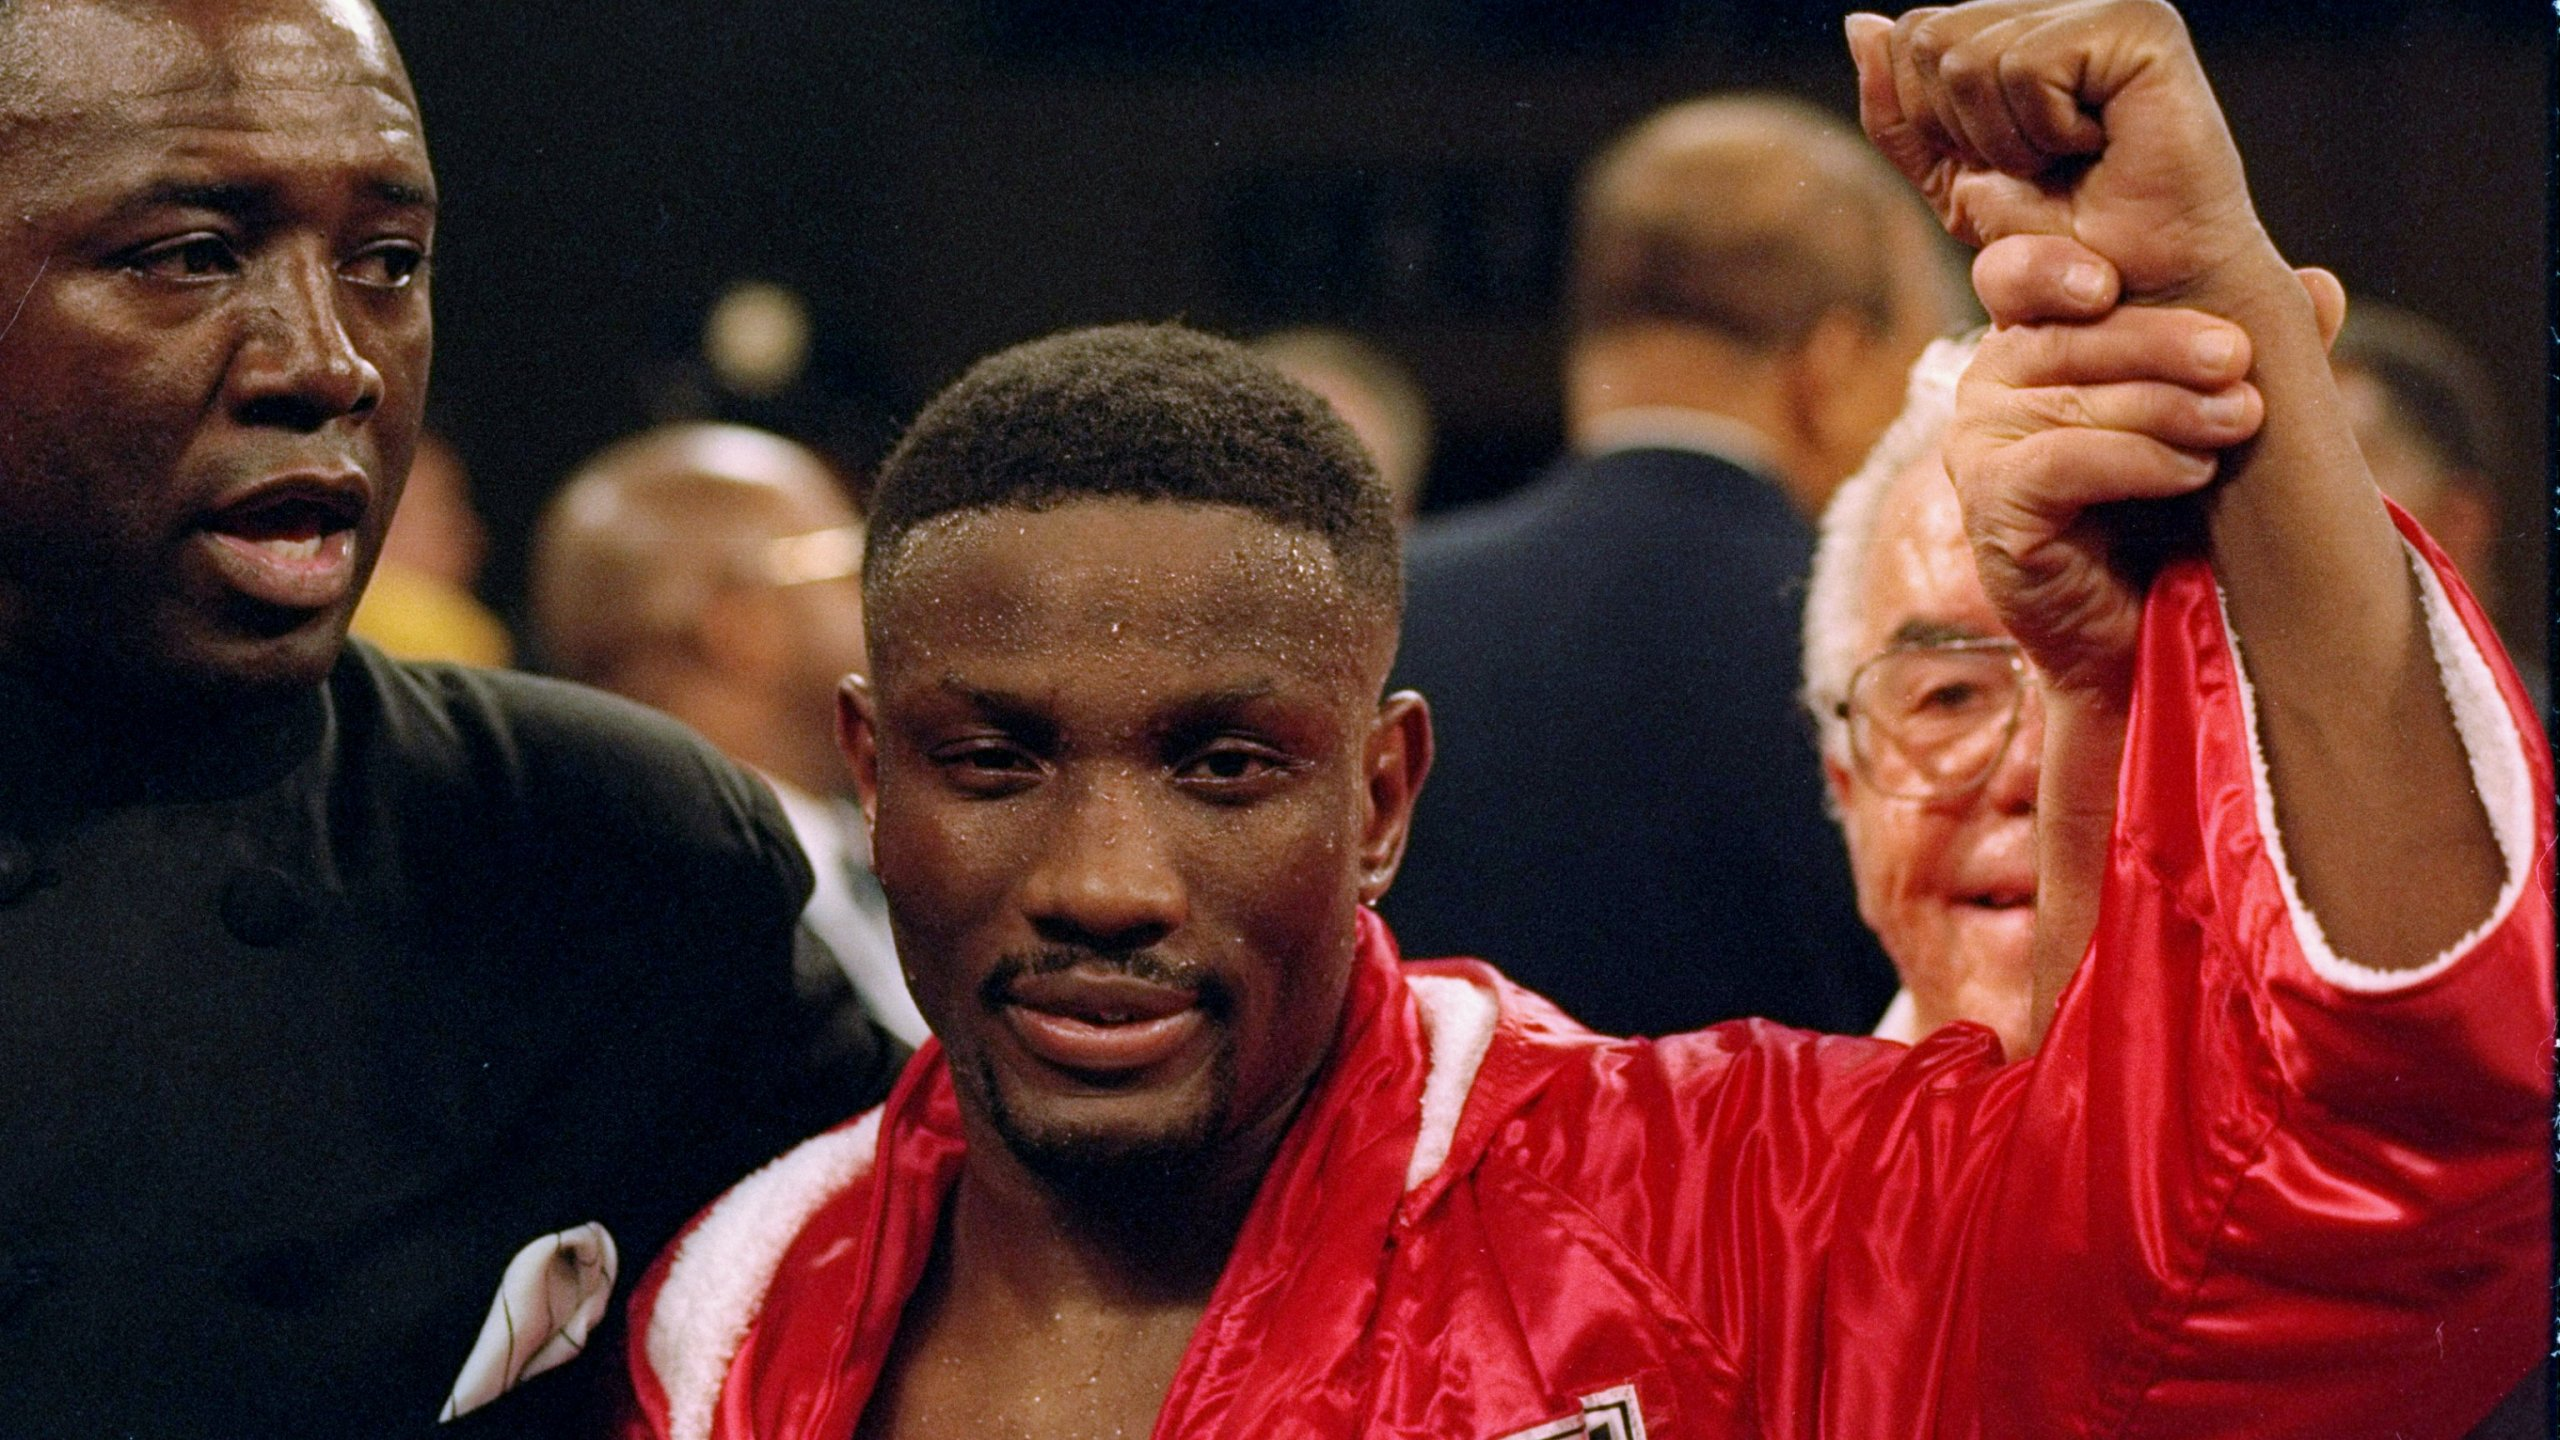 Pernell Whitaker stands in the ring before a fight against Julio Cezar Vasquez. (Credit: Simon Bruty/Allsport via Getty Images)